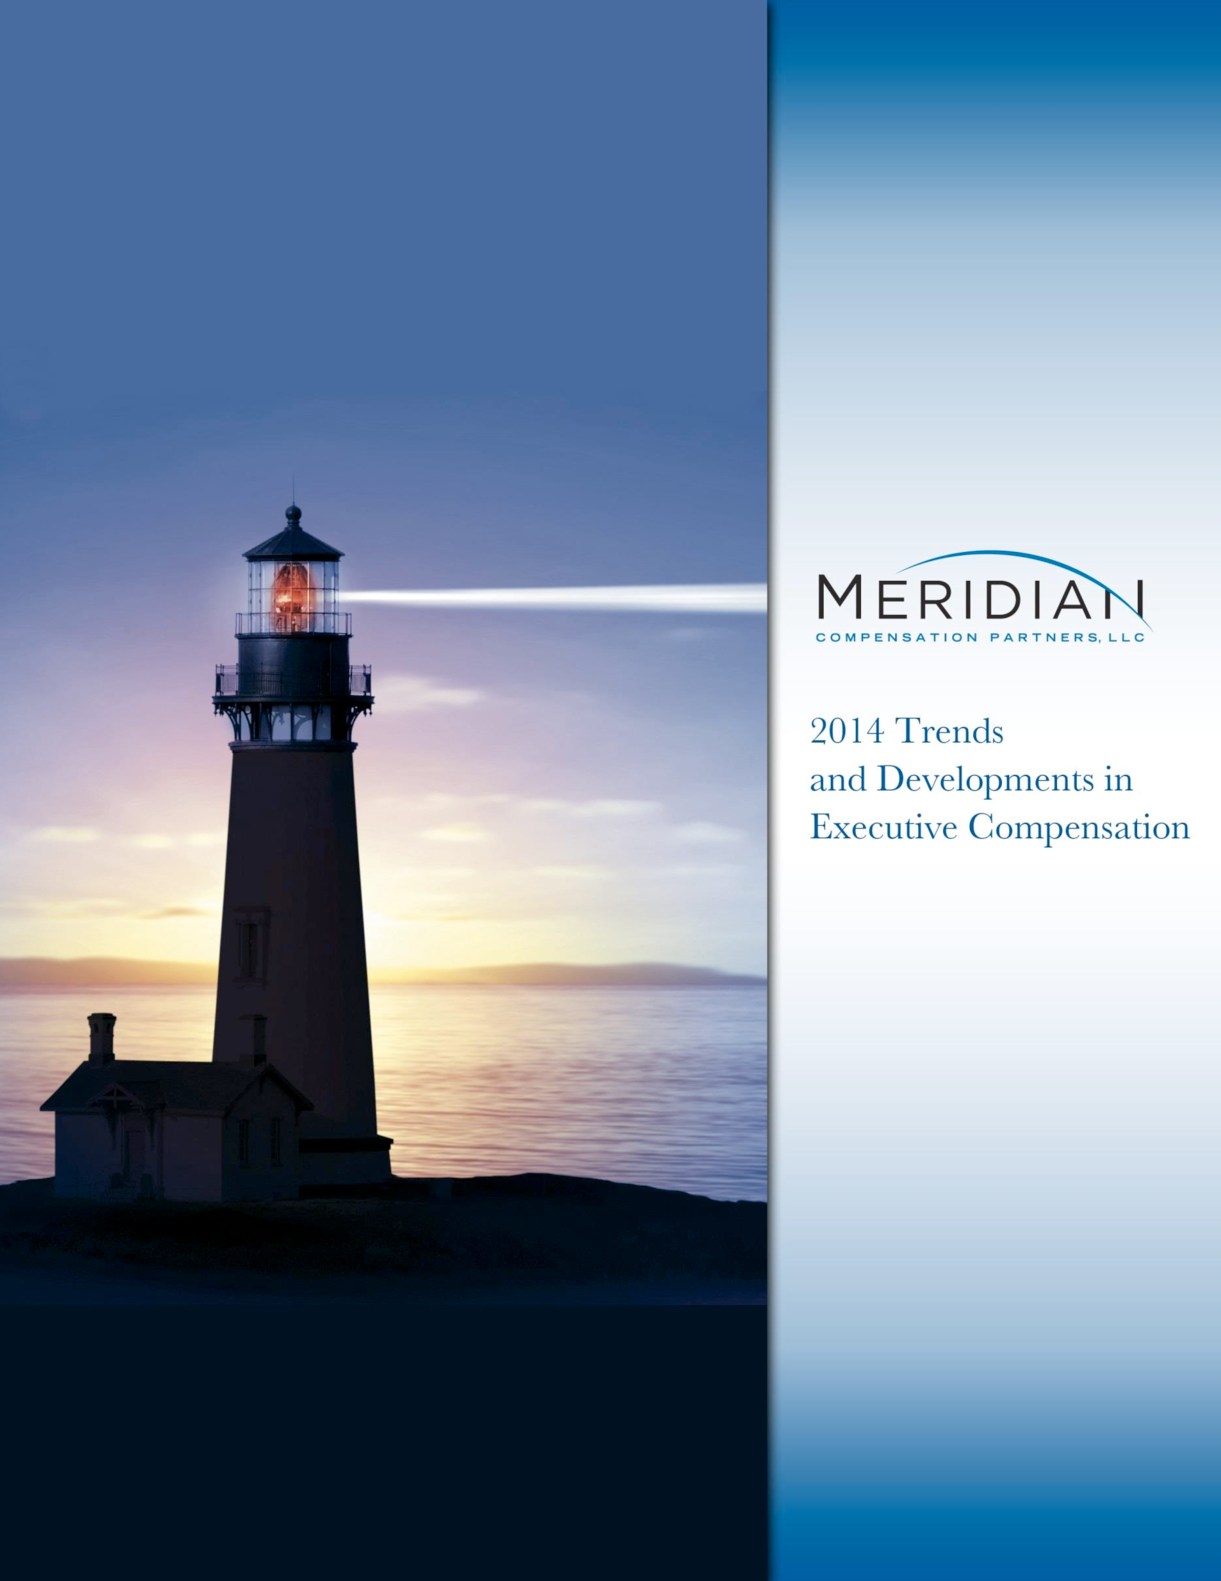 2014 Trends and Developments in Executive Compensation (PDF)